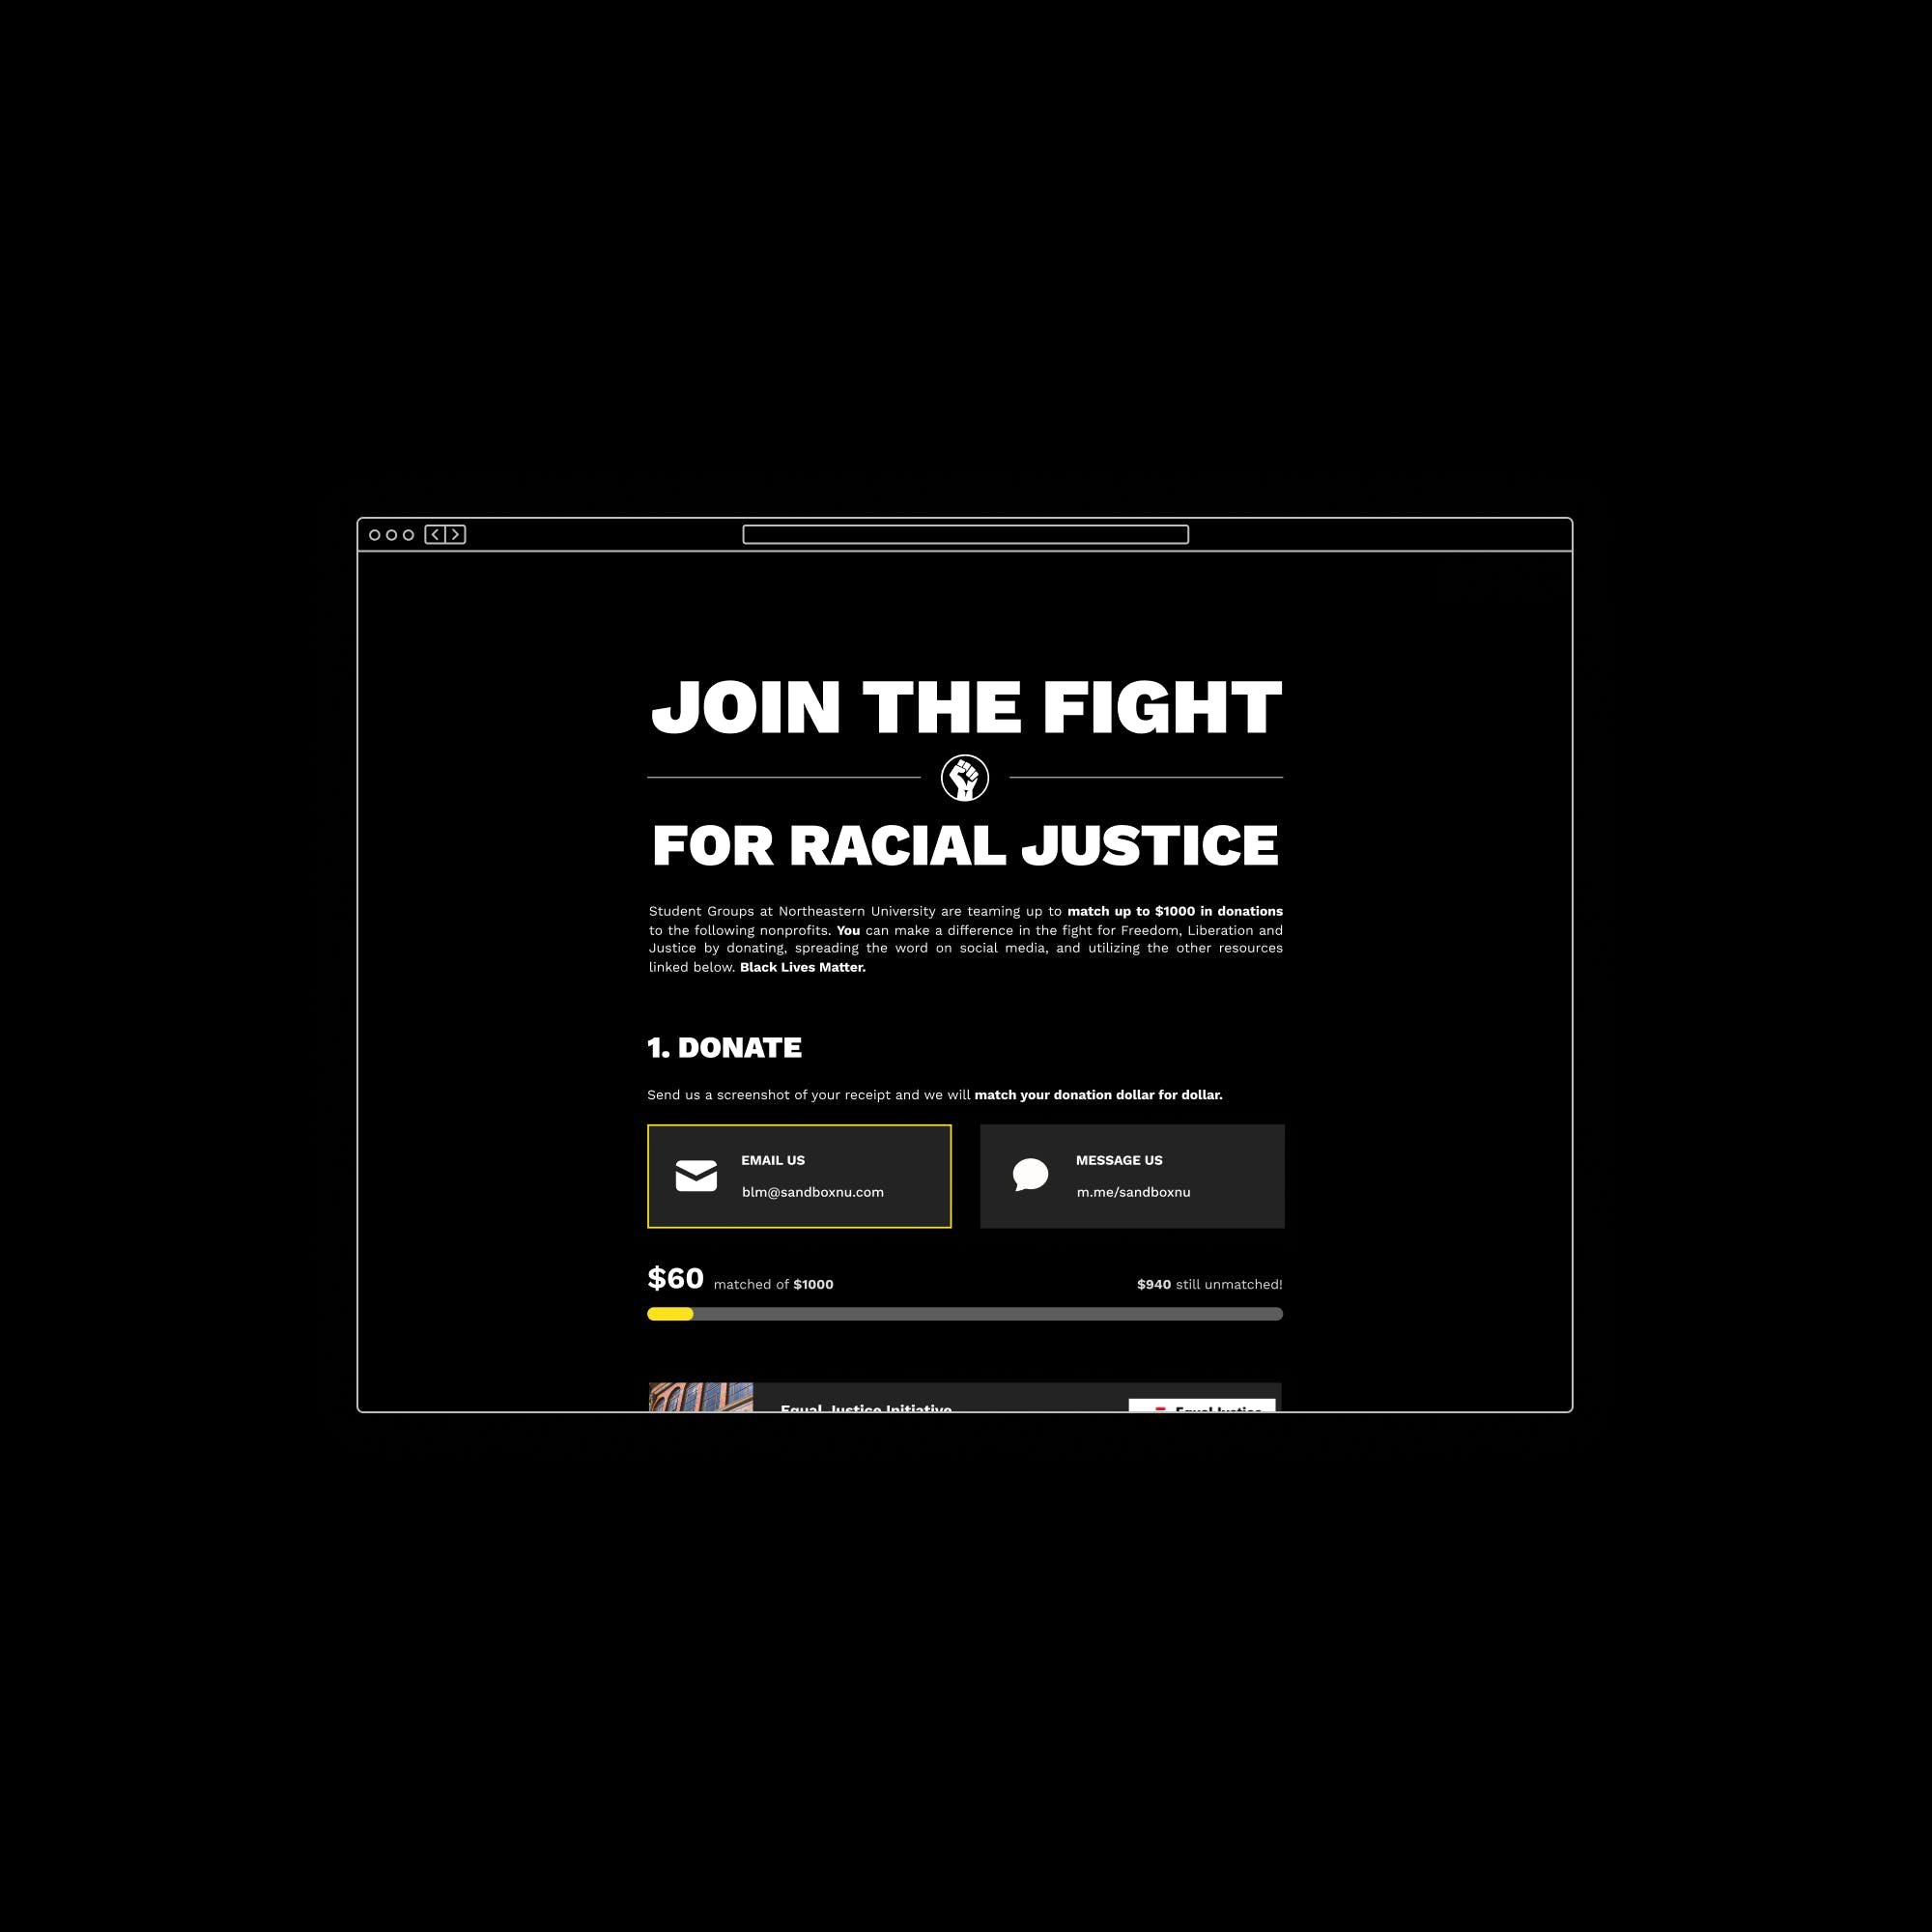 A thumbnail showing screens of the BLM donation site on a black background